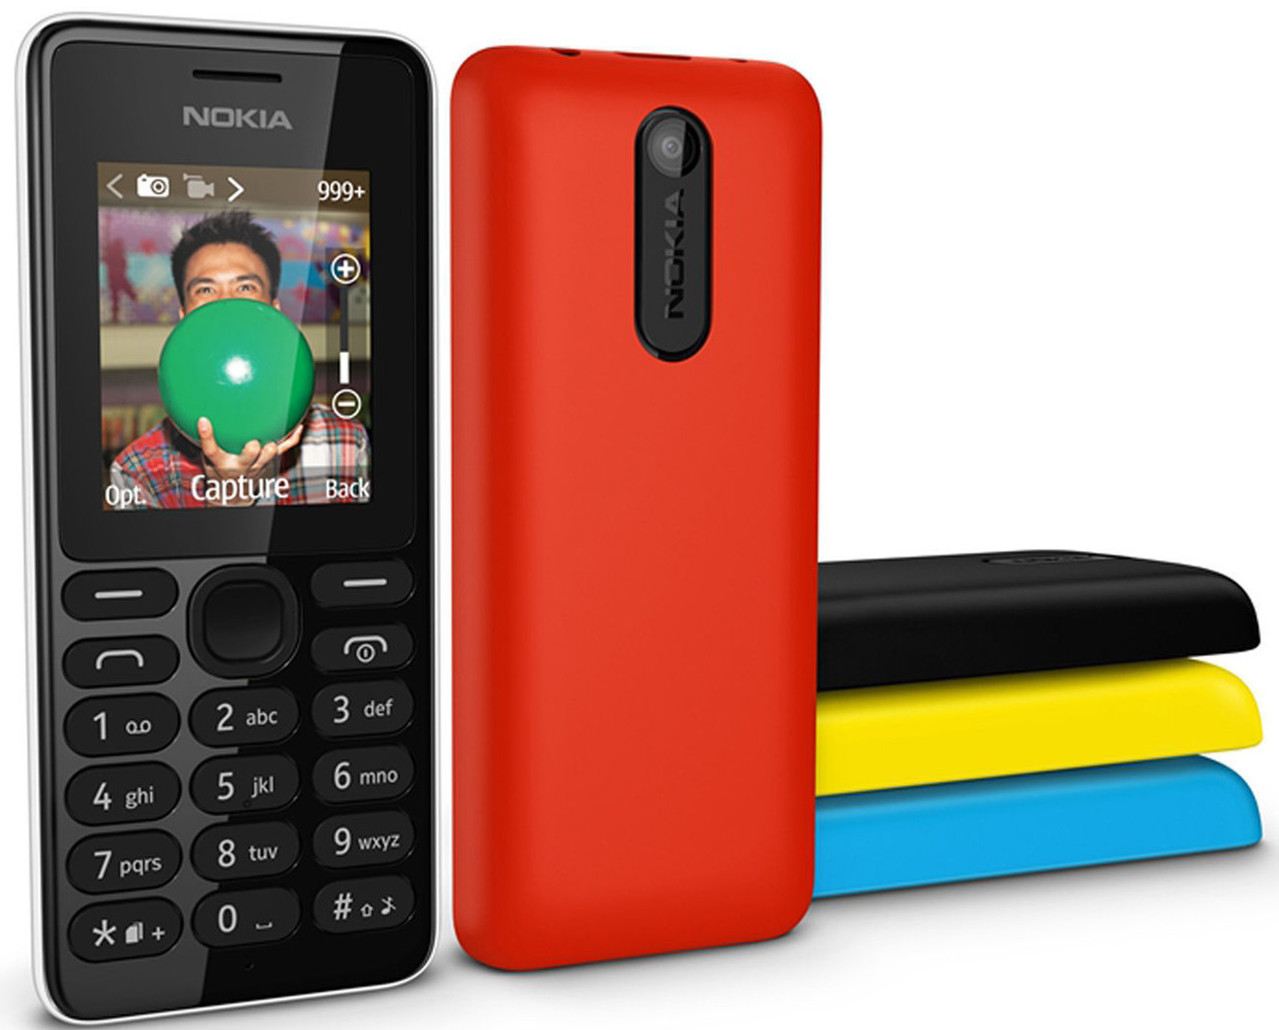 Brand New Nokia 108 Dual Sim Unlocked Gsm Fm camera Mobile Phone red 5